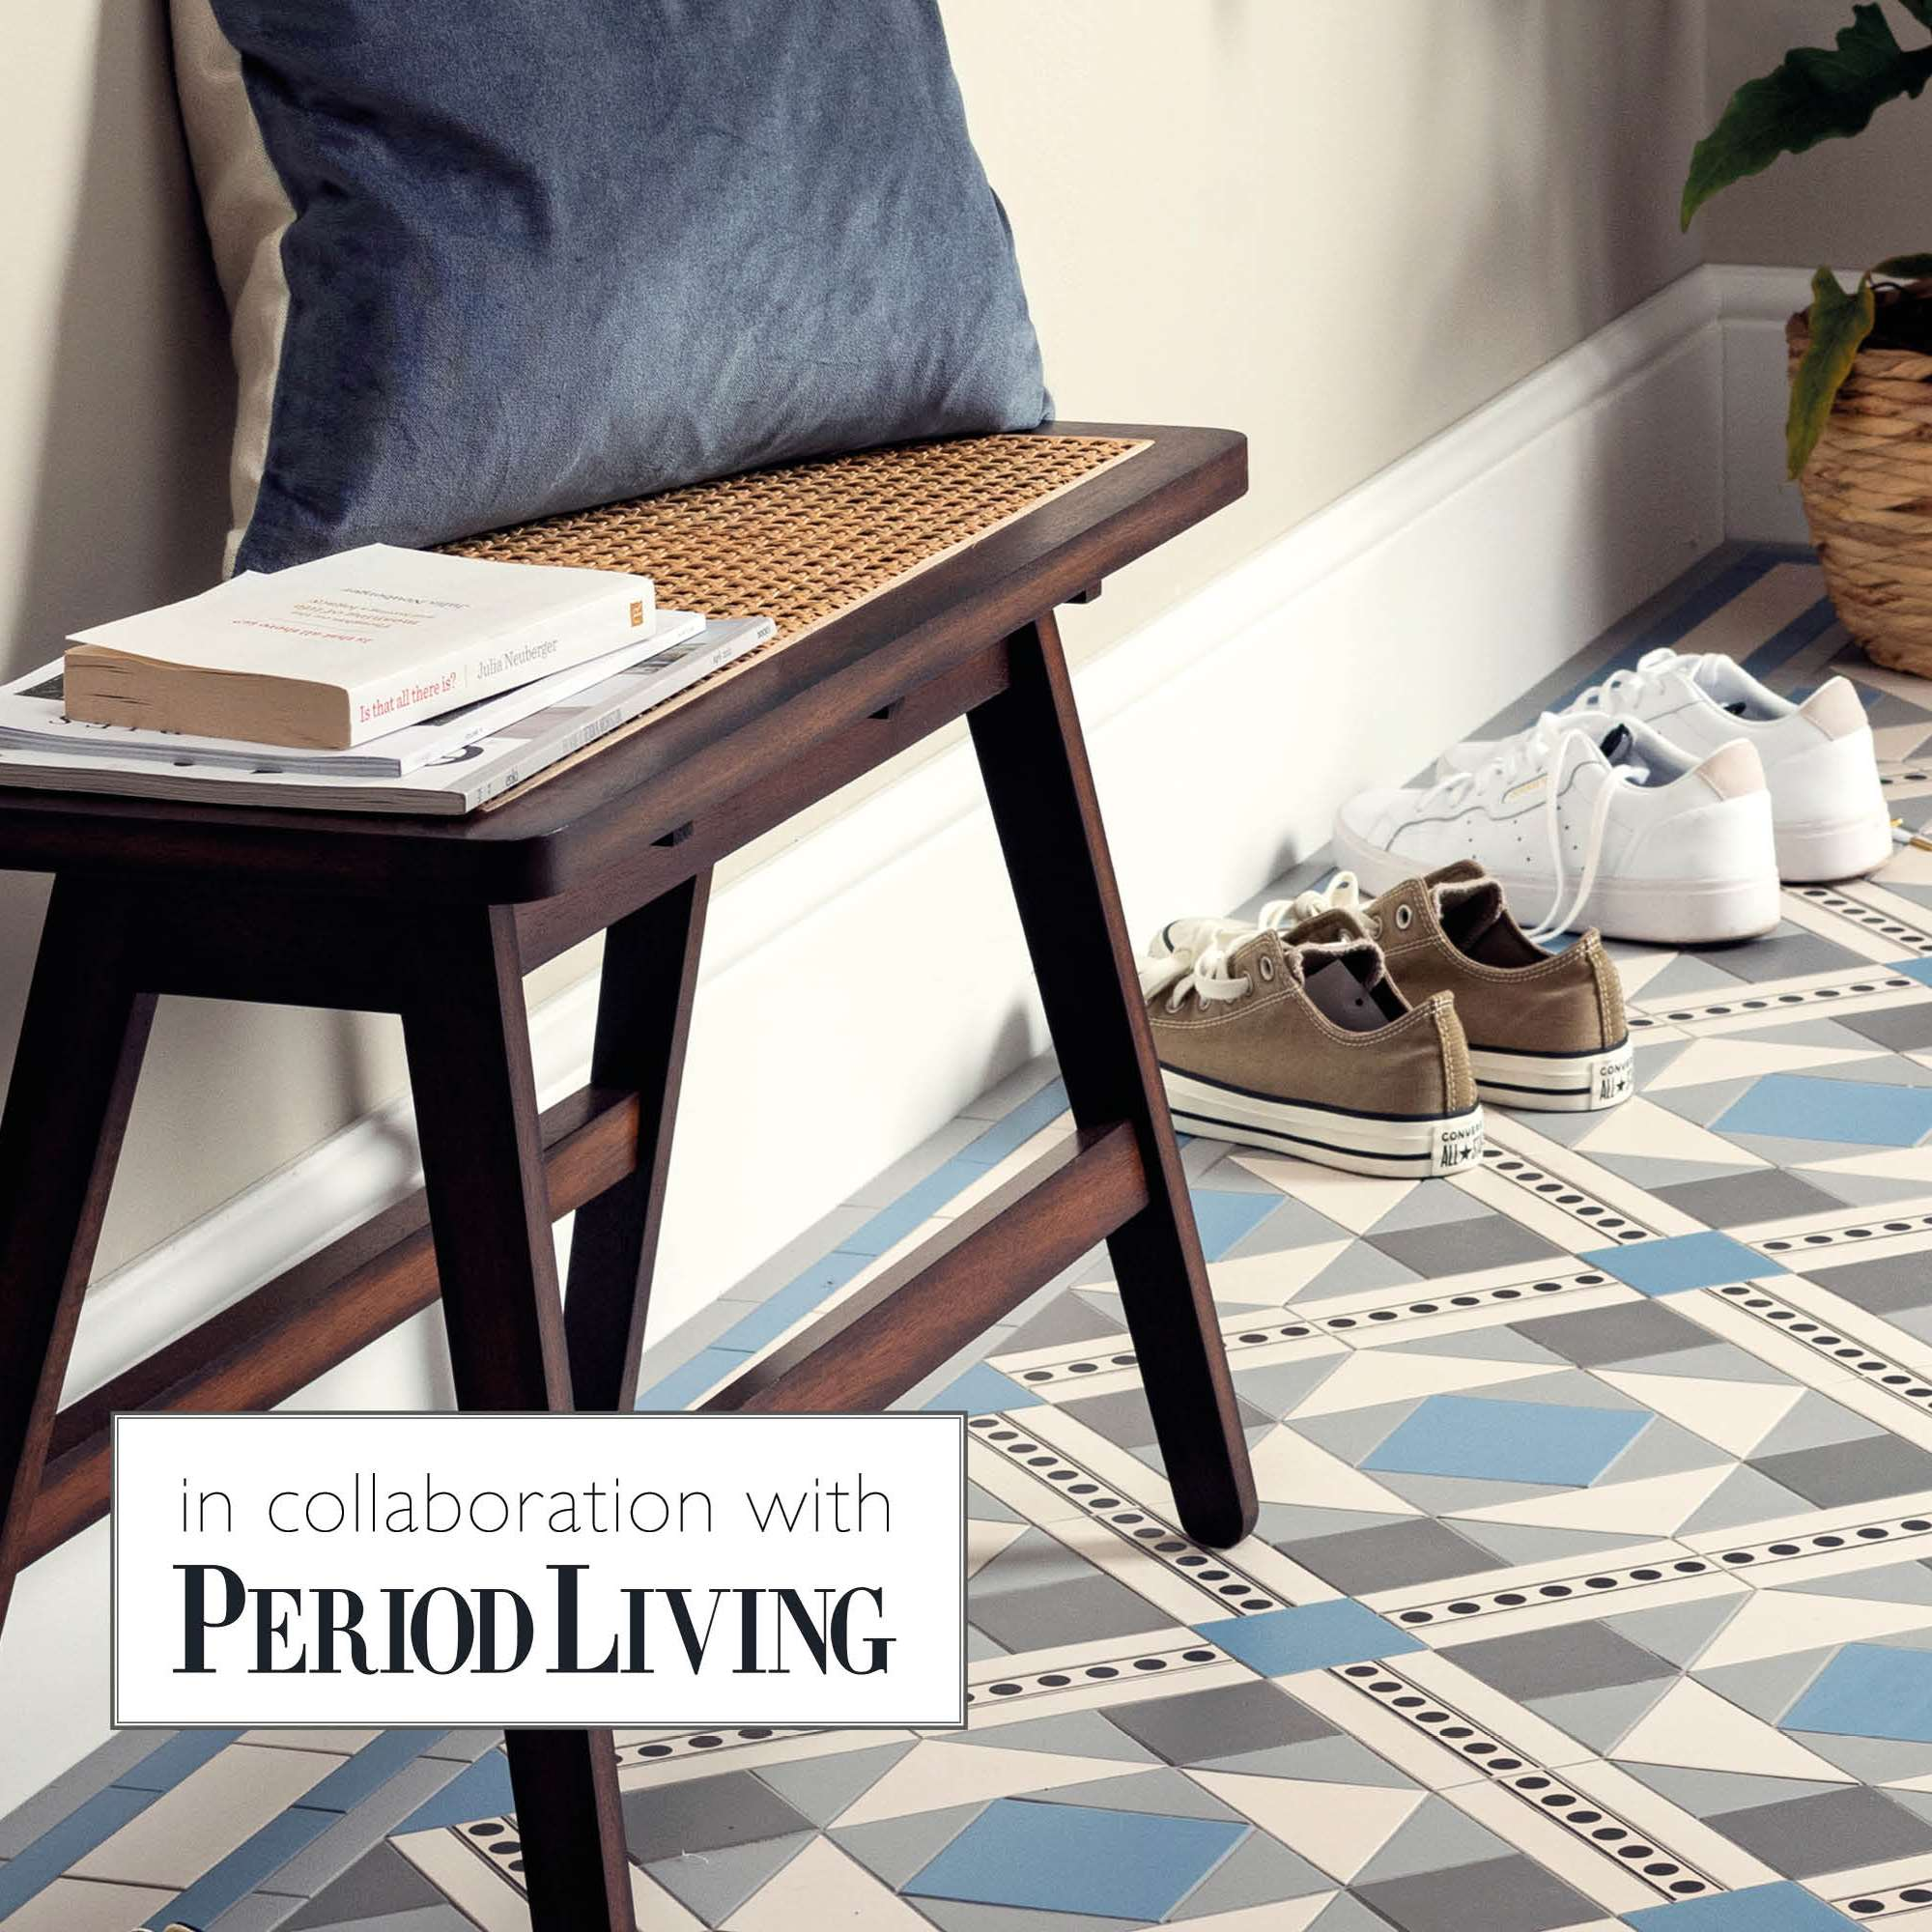 Our new Victorian Floor Tile pattern in collaboration with Period Living